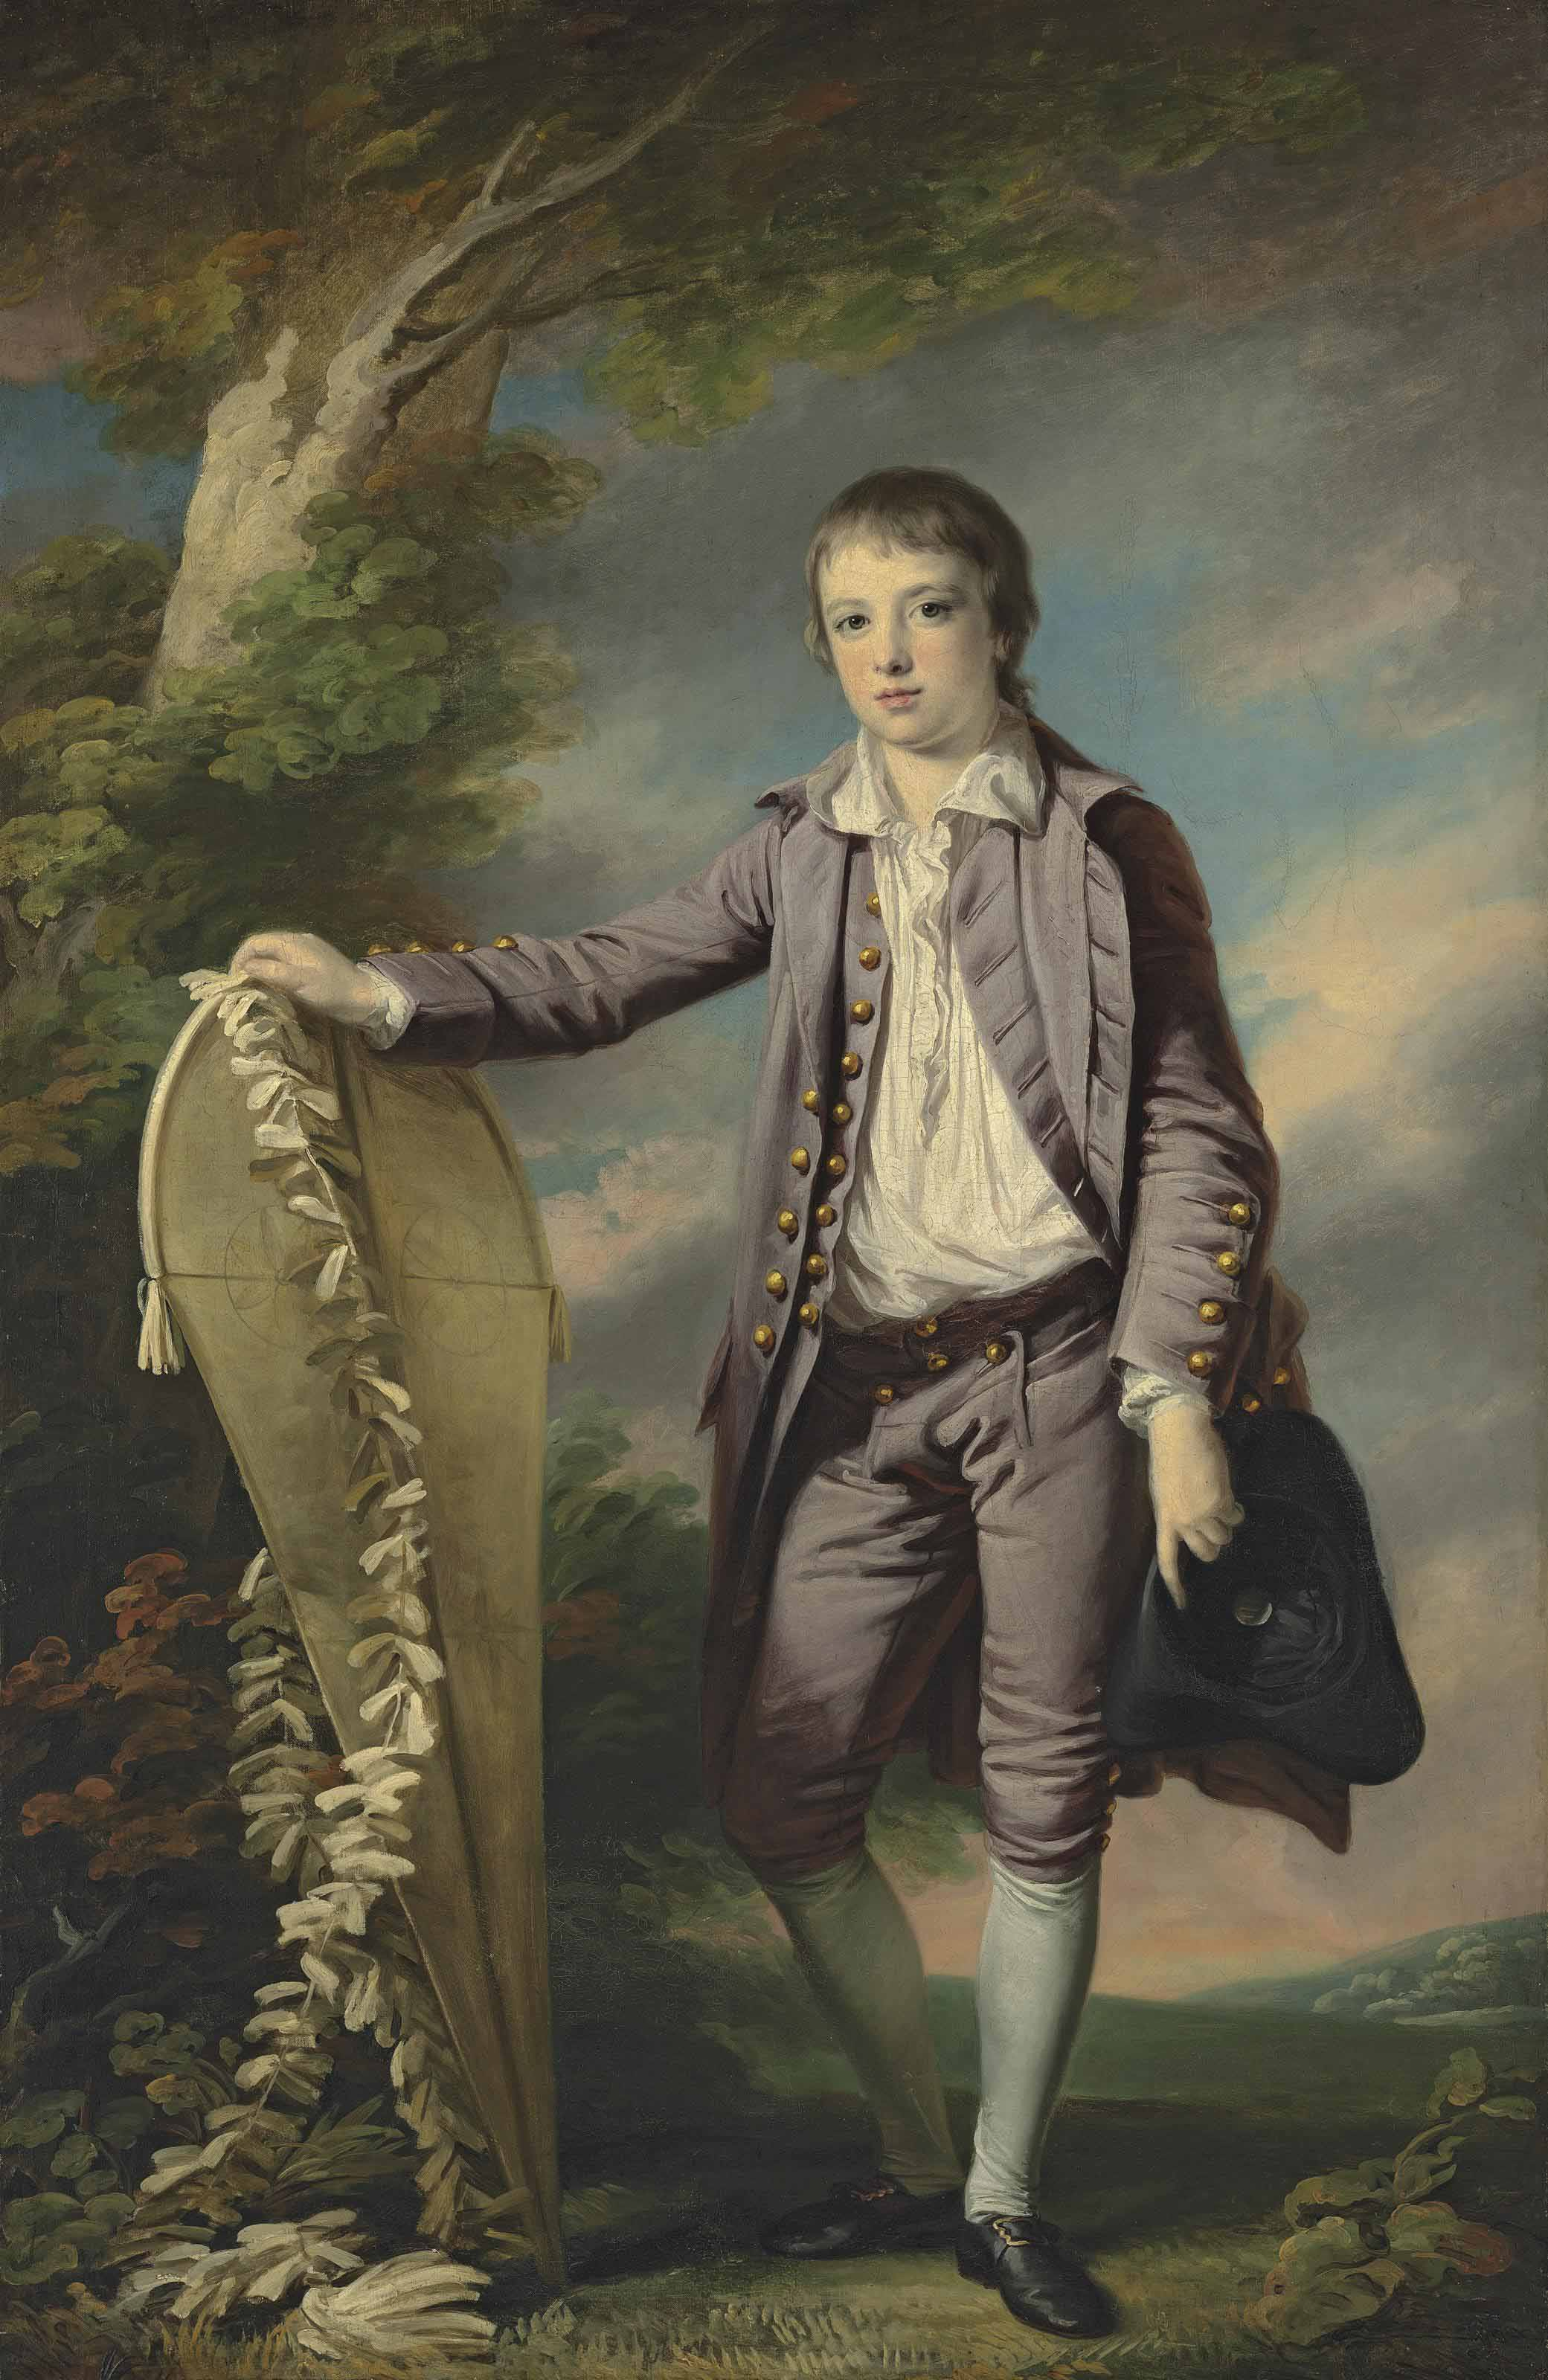 Portrait of Master Smith, full-length, in a mauve coat and breeches, his right hand resting on a kite, in a landscape